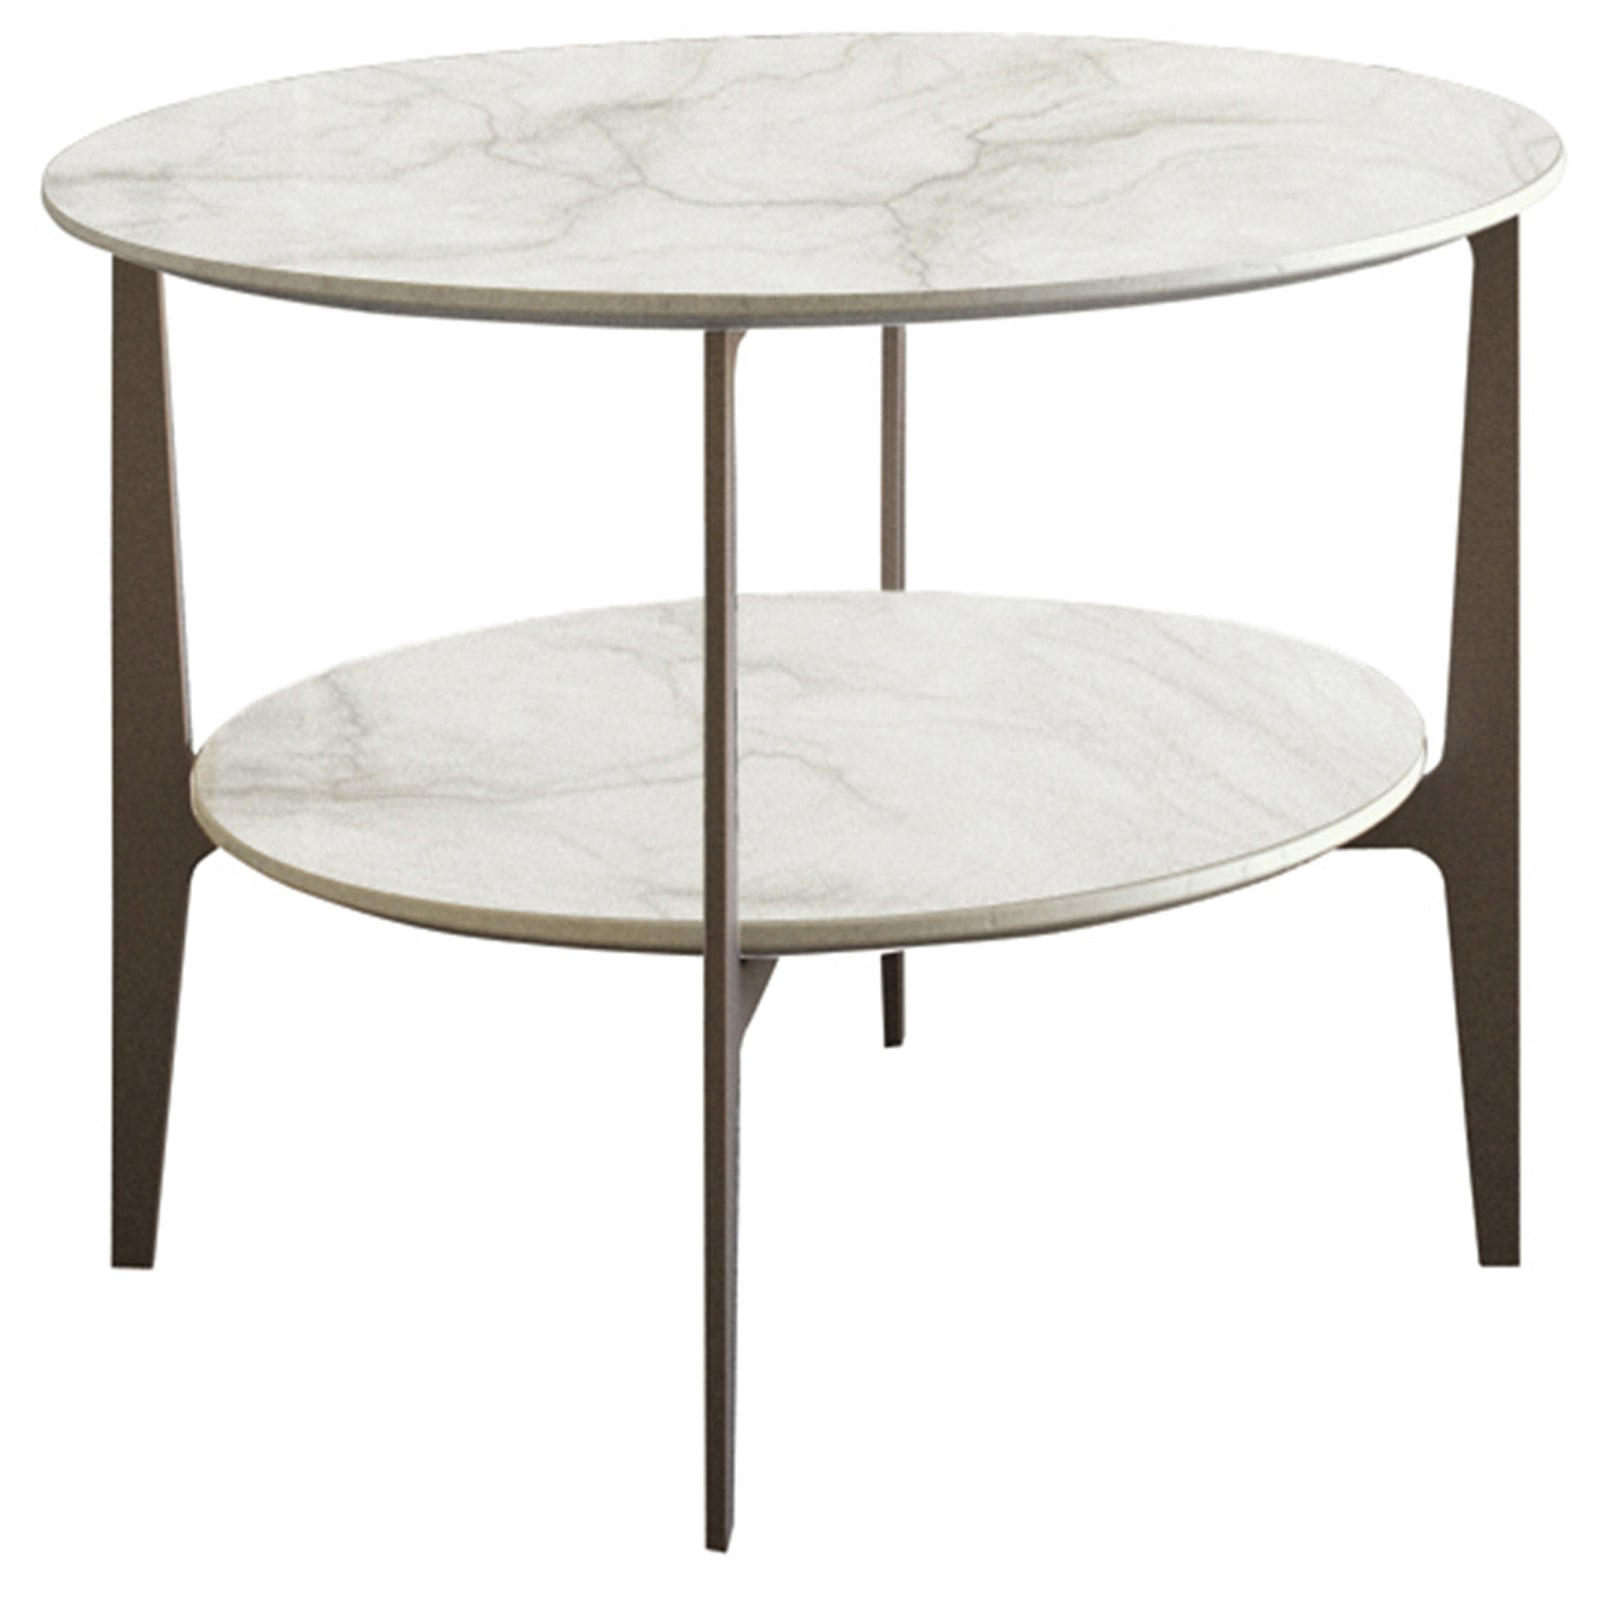 Dupre Circular Side Table - Casamilano